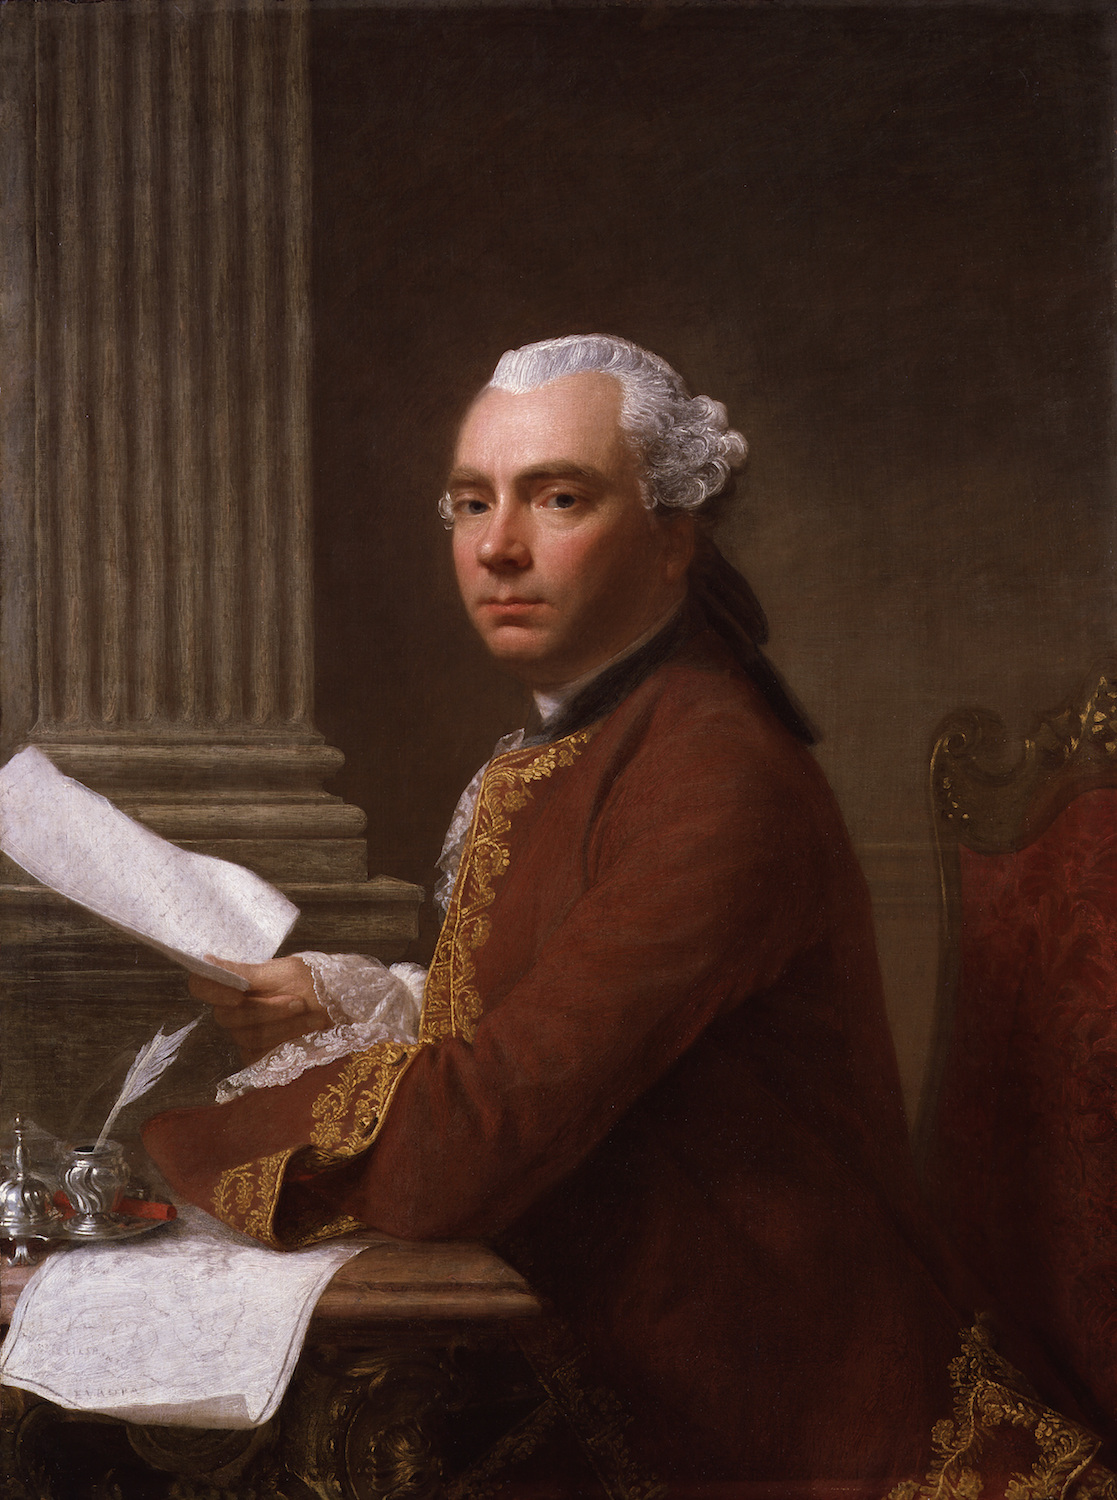 Painting of Robert Wood sitting at desk with paper in hand